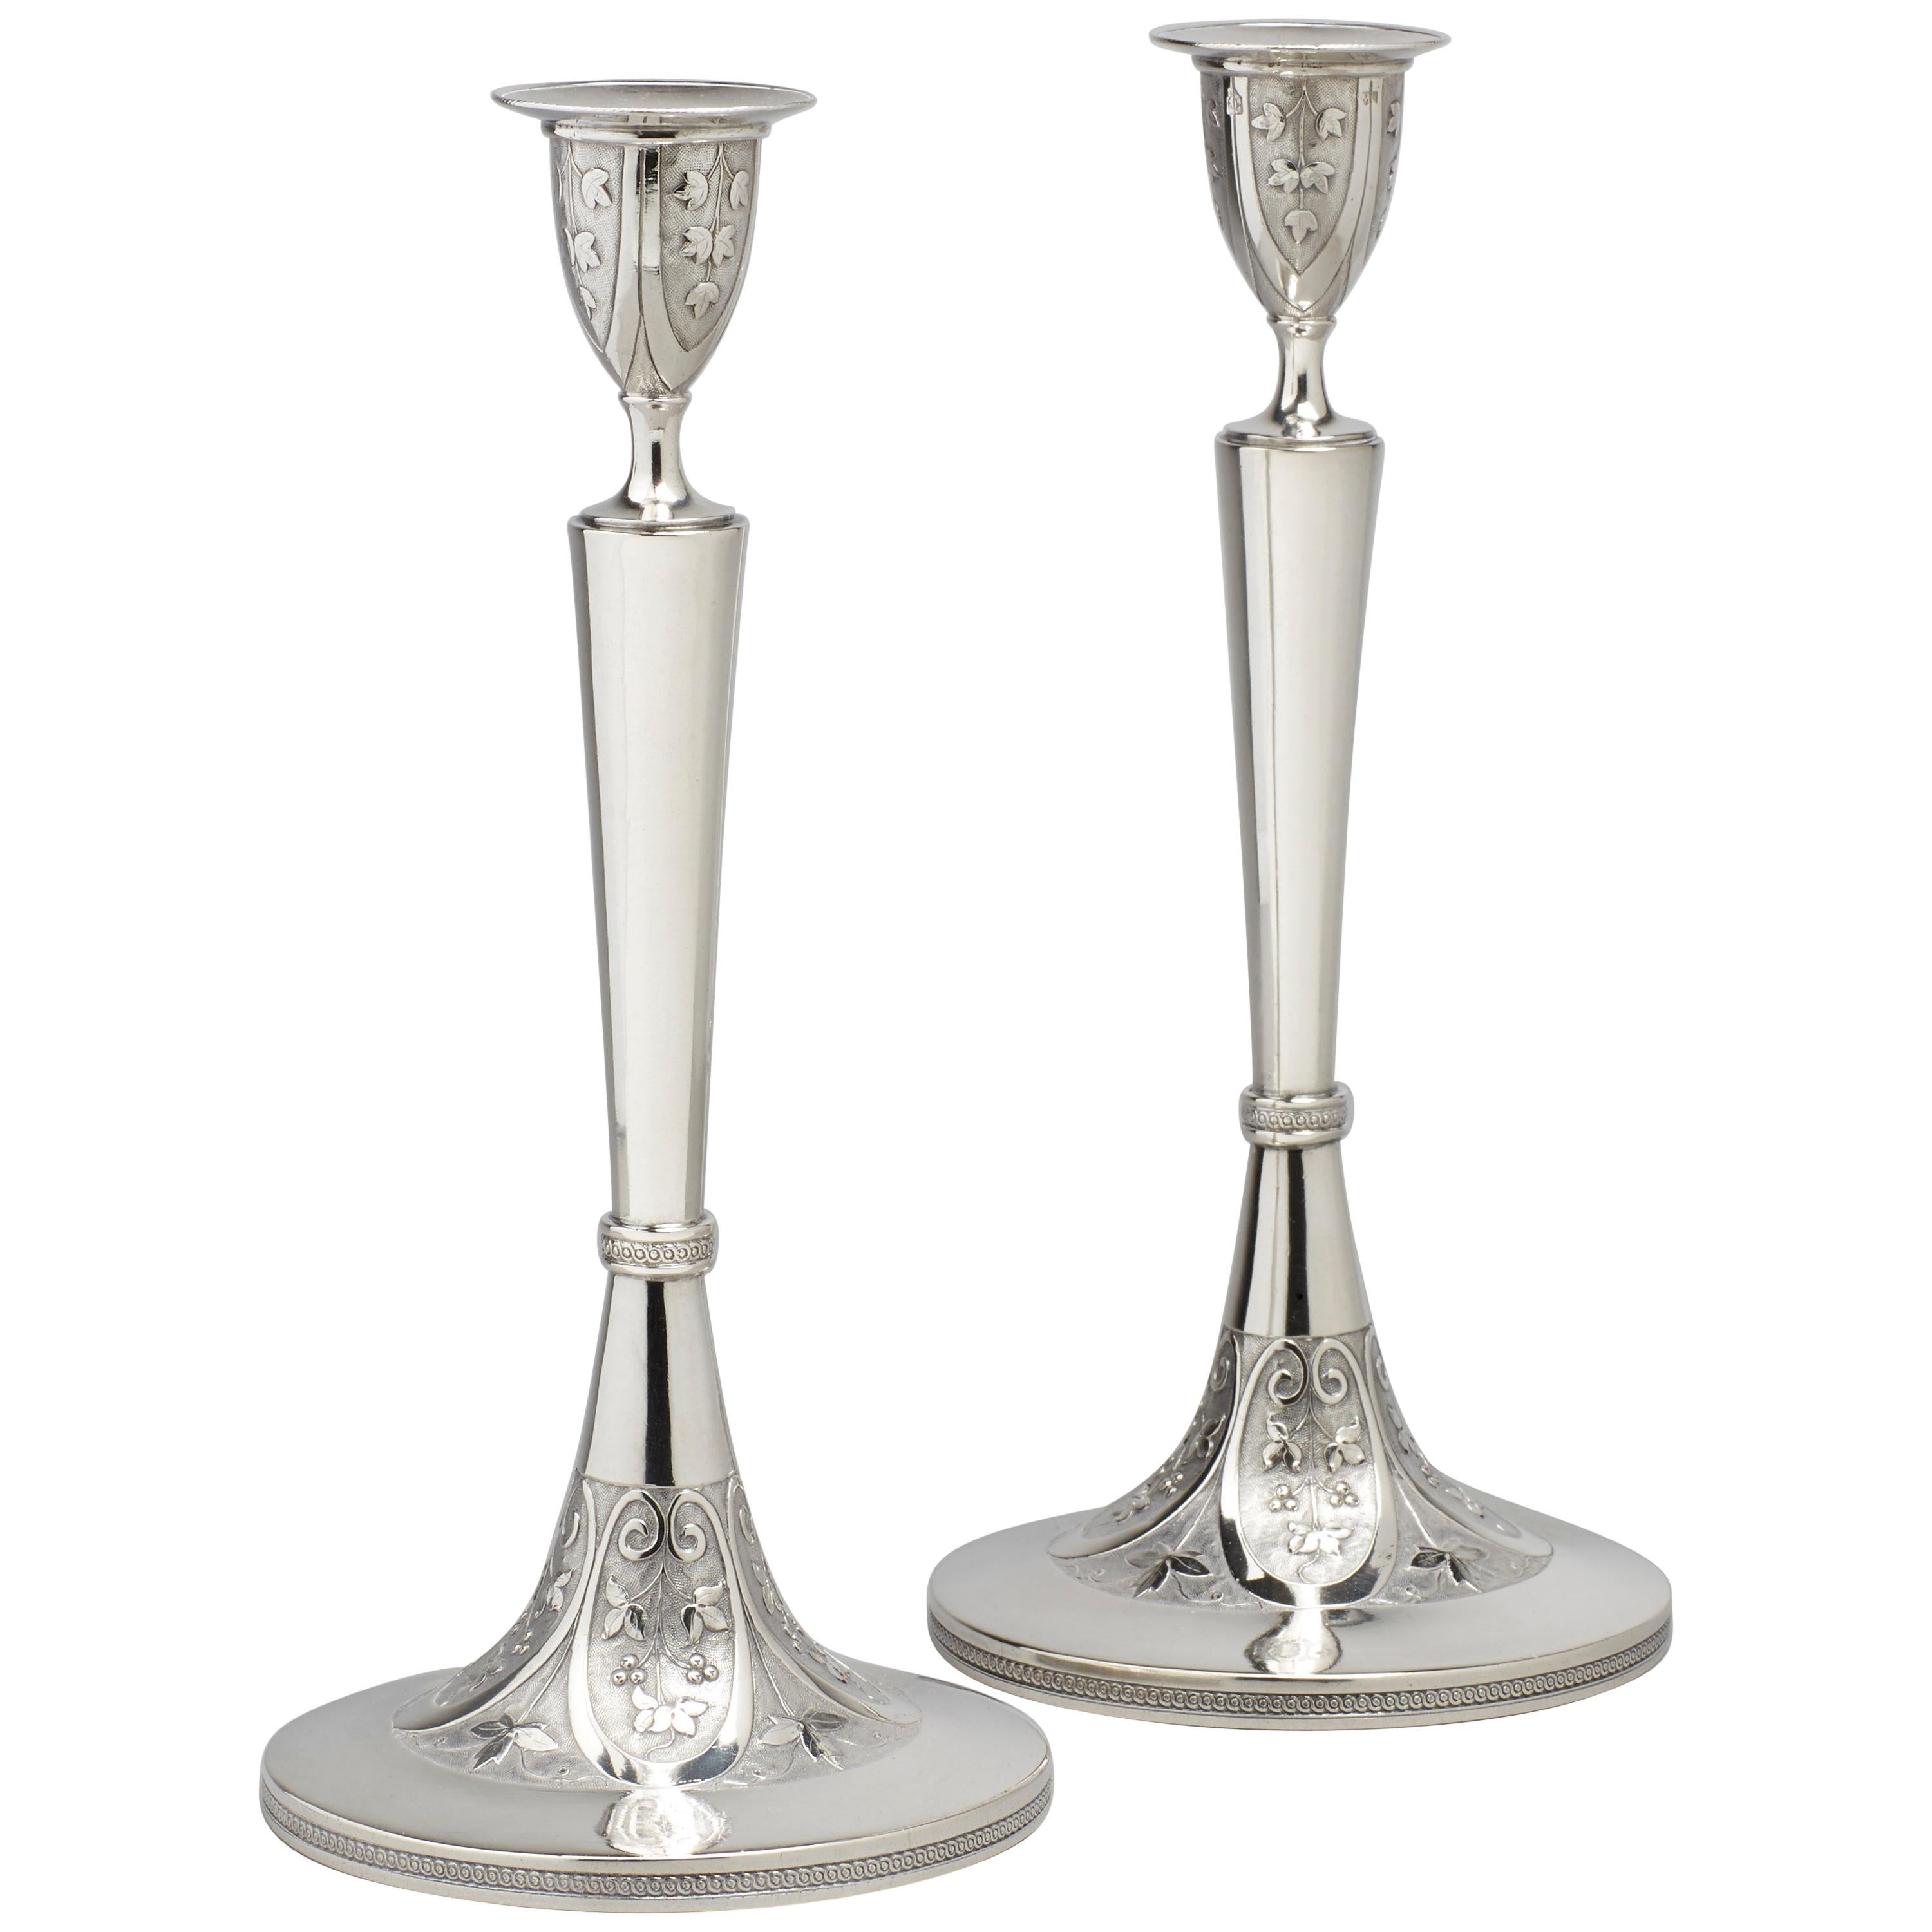 Elegant Pair of Early 19th Century Neoclassical Silver Candlesticks